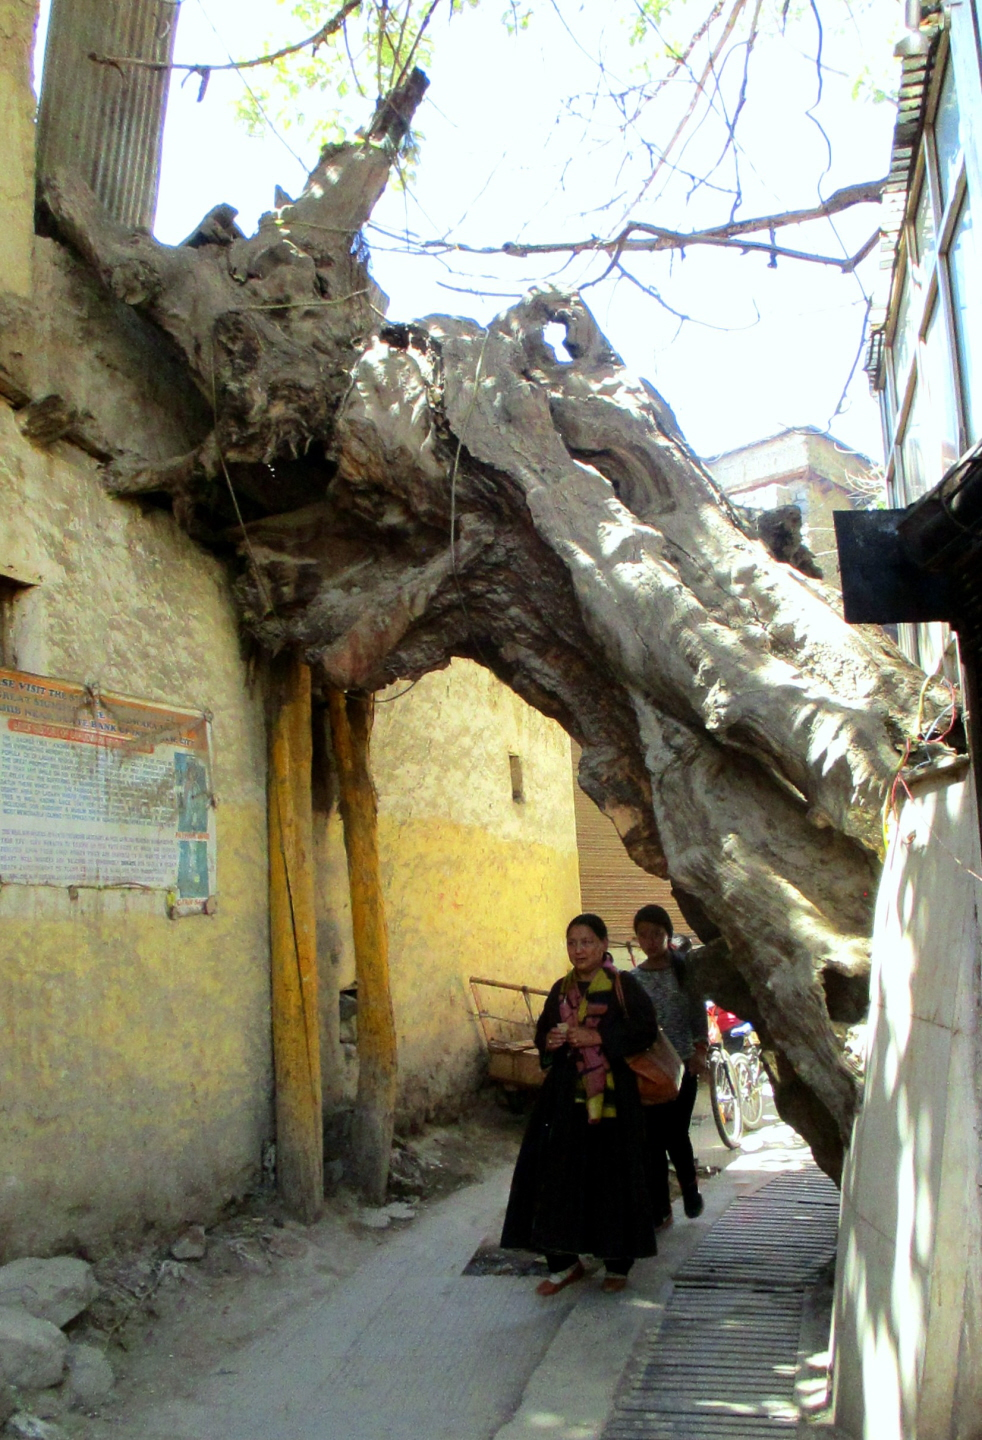 Branch of Sikh Sacred Tree - Planted by Guru Nanak in Leh, Ladakh